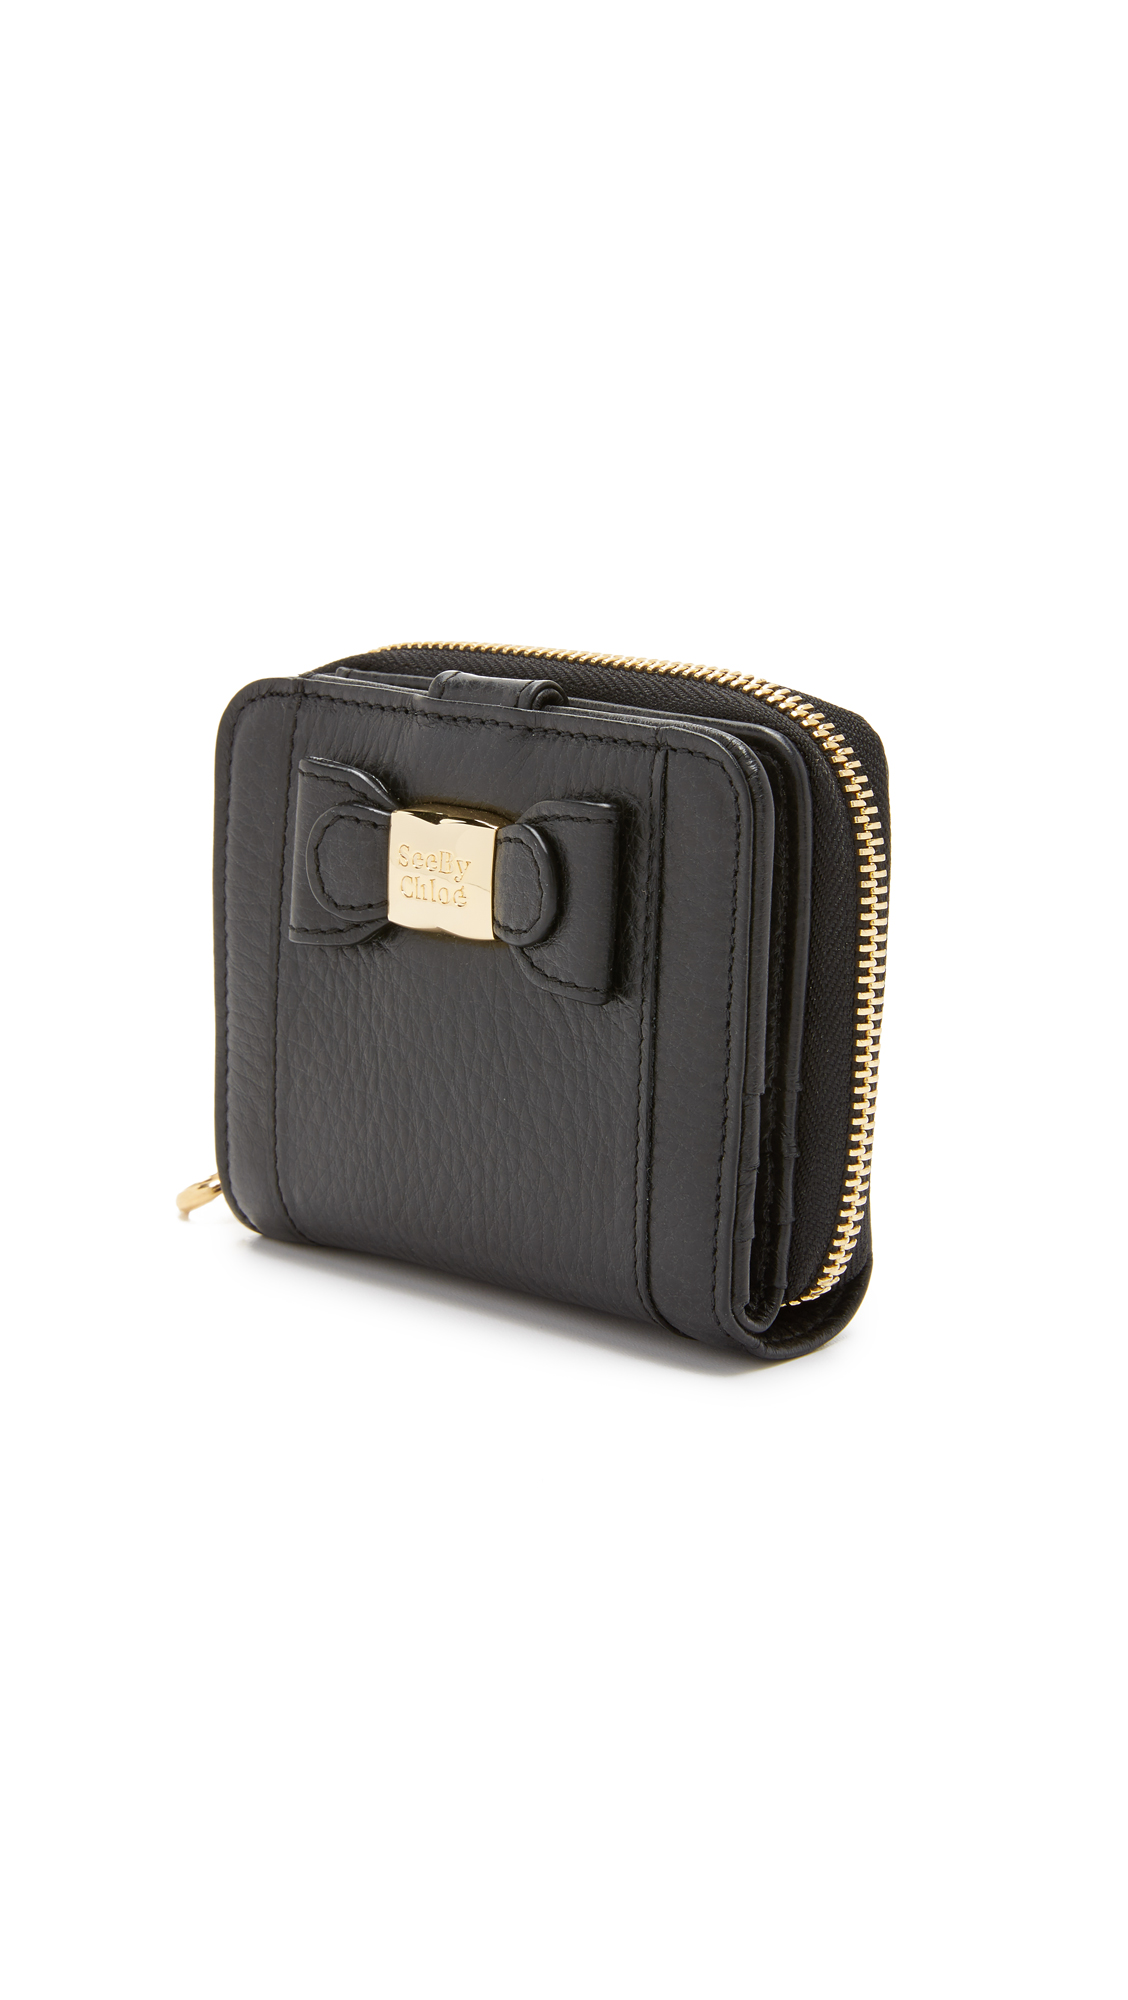 Mino Small Wallet in Black See By Chloé 2018 New For Sale FhfmZZDab